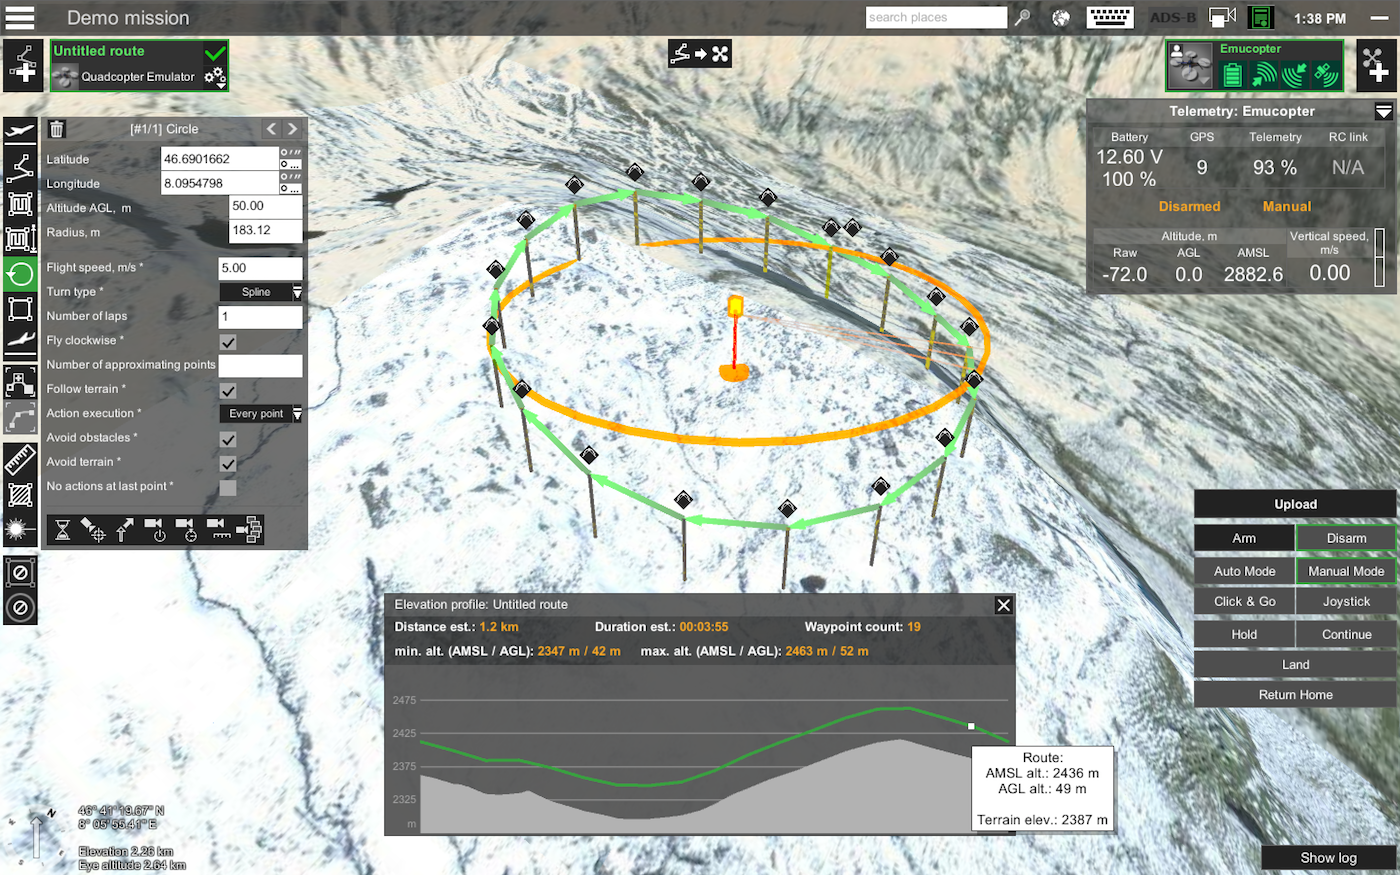 Elevation Plan And Profile : Mission planner drone control ugcs